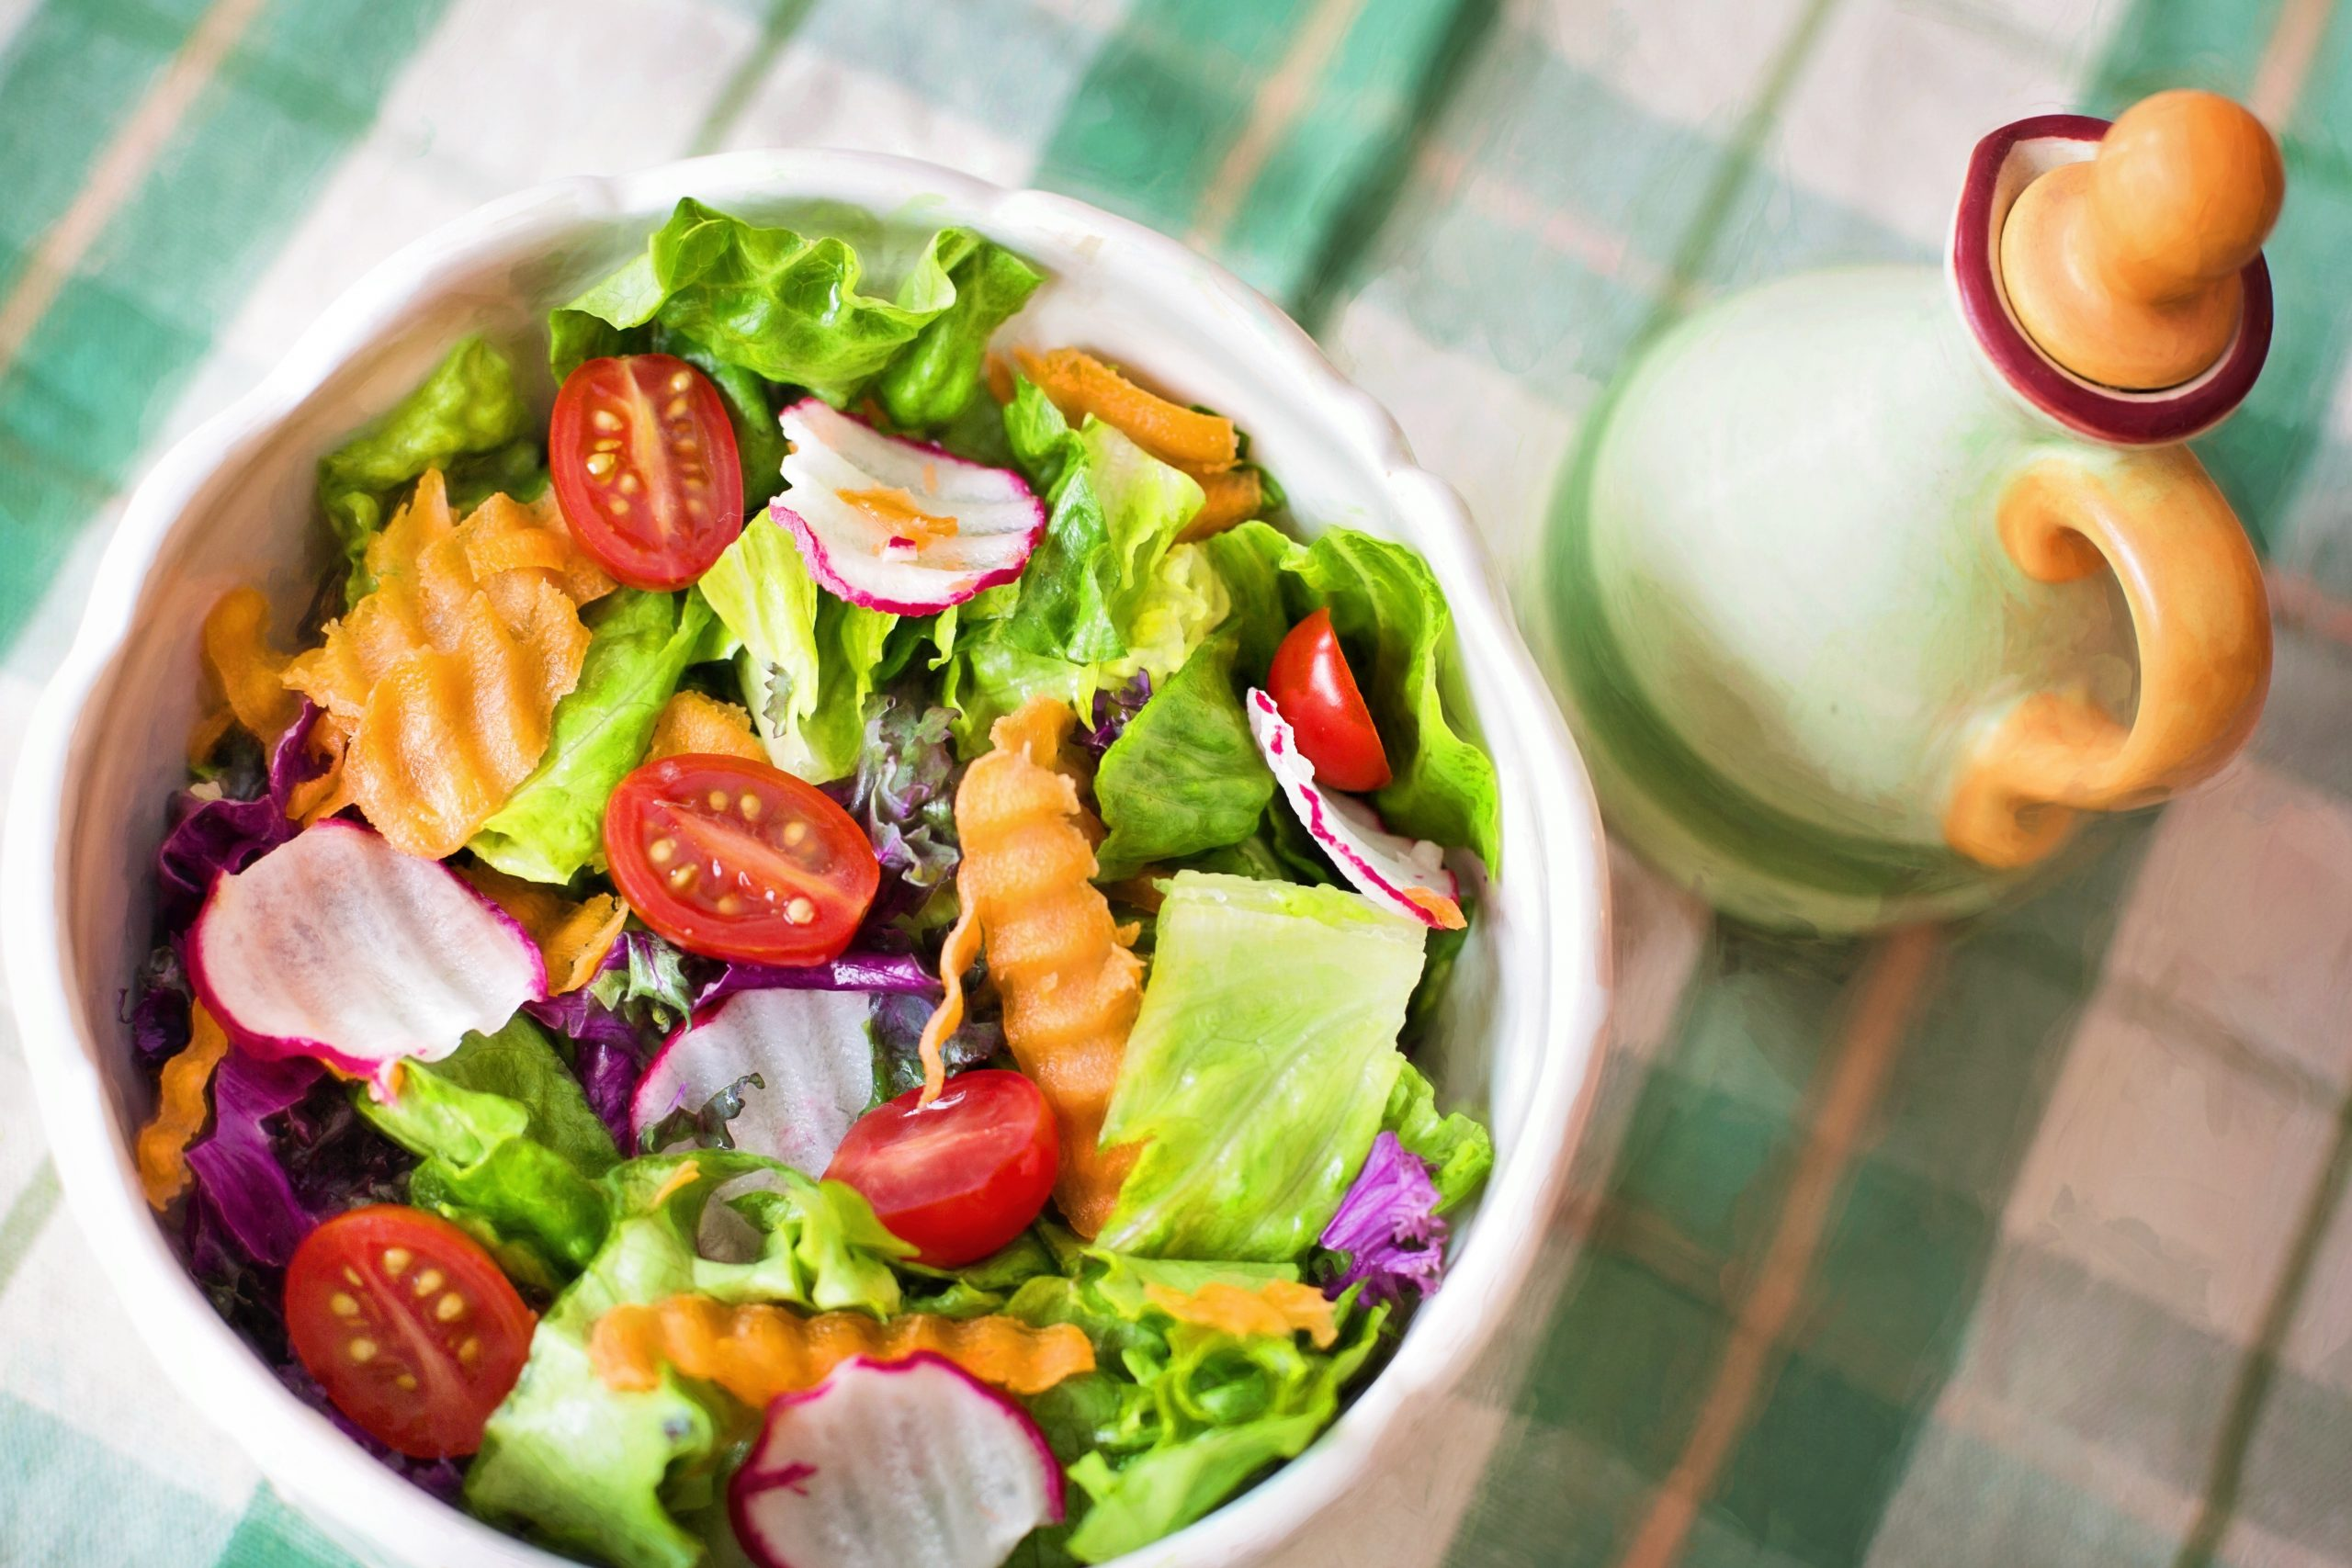 Colorful salad as an example of clean and stress-free eating.